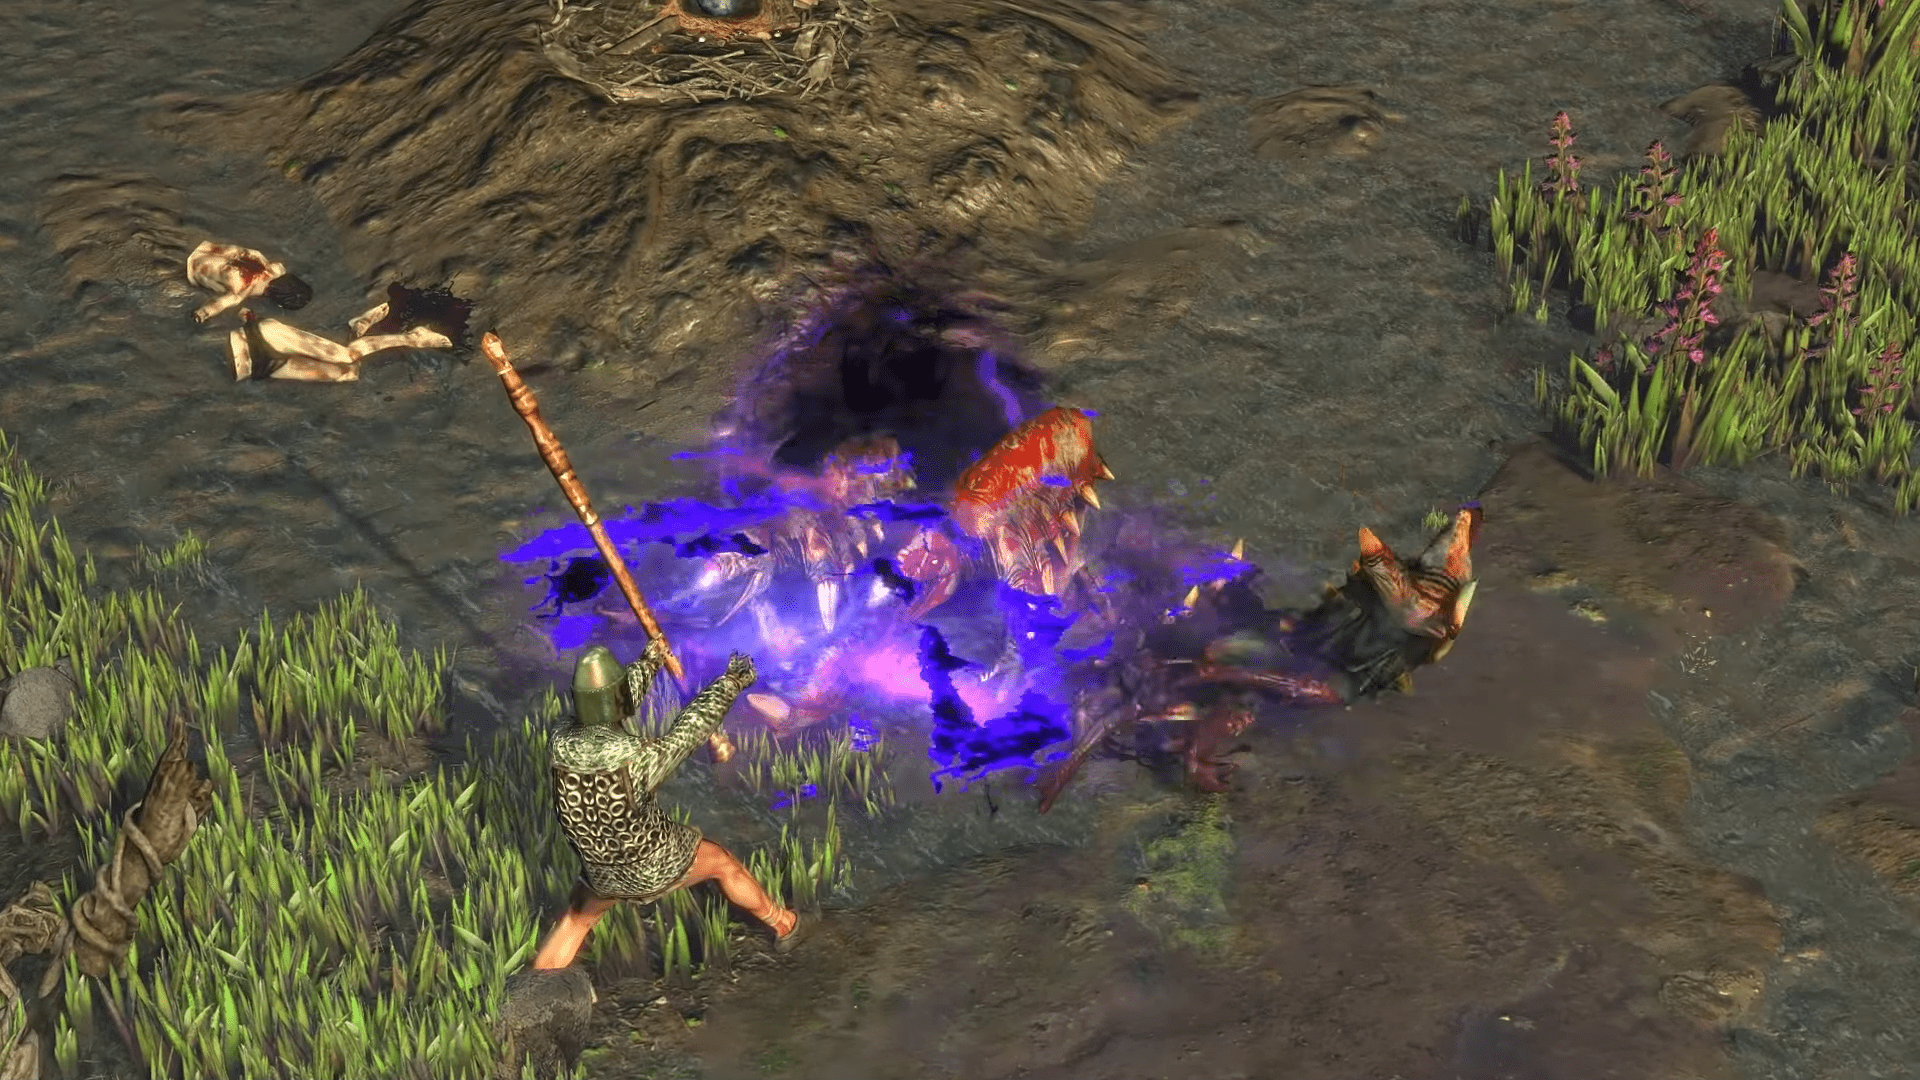 Current 'Path Of Exile' League Blight Announced To Be Incorporated Into Core